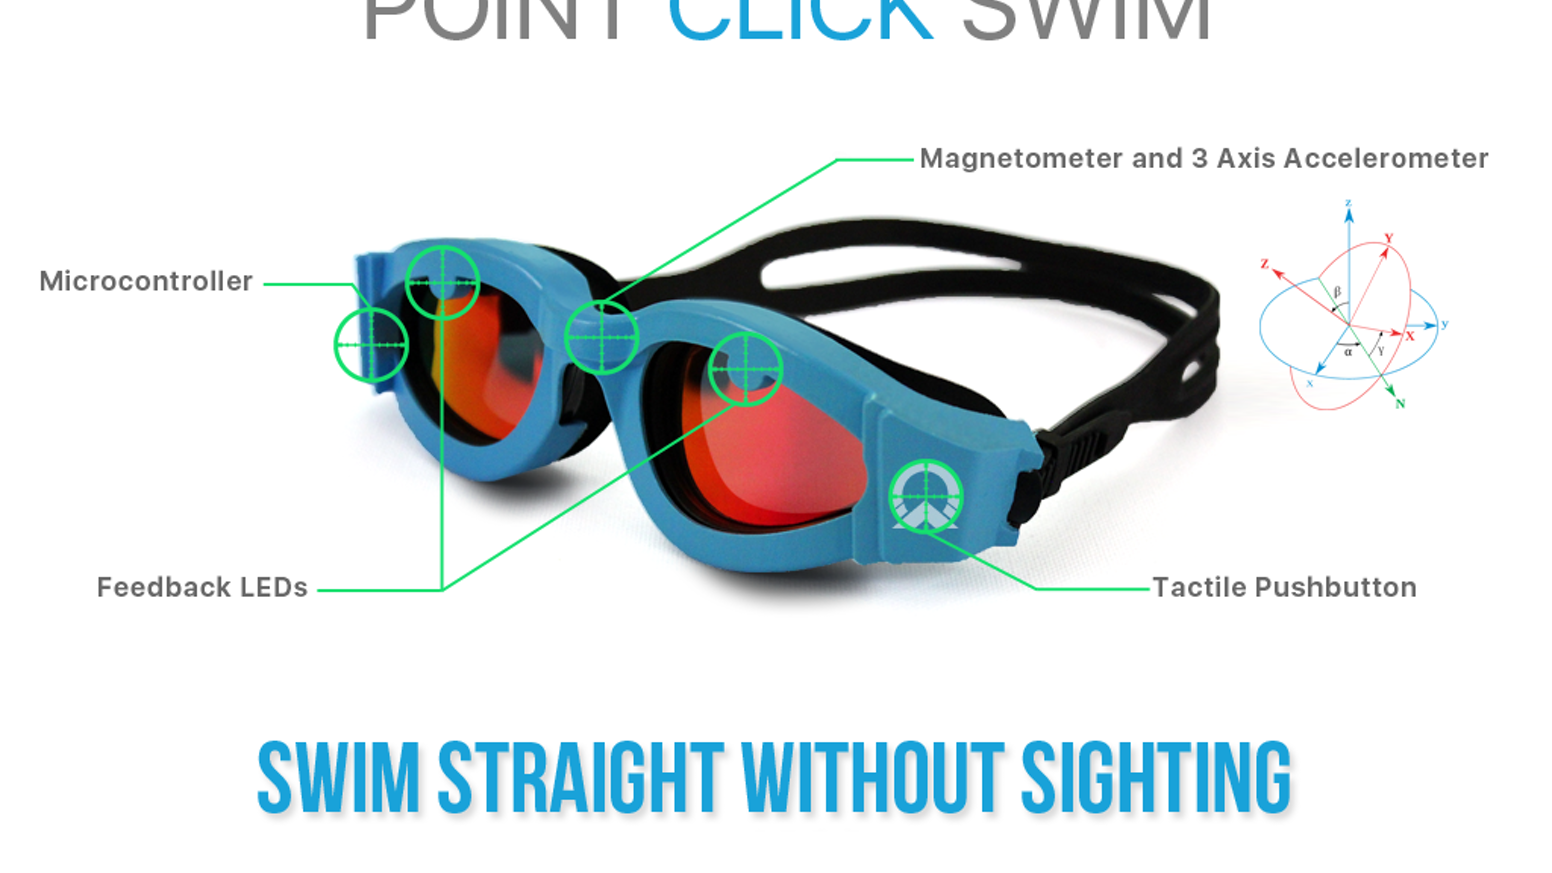 Navigation goggles for ANY swimmer who swims in open water for recreation, endurance or competition. USAT Approved for competition.